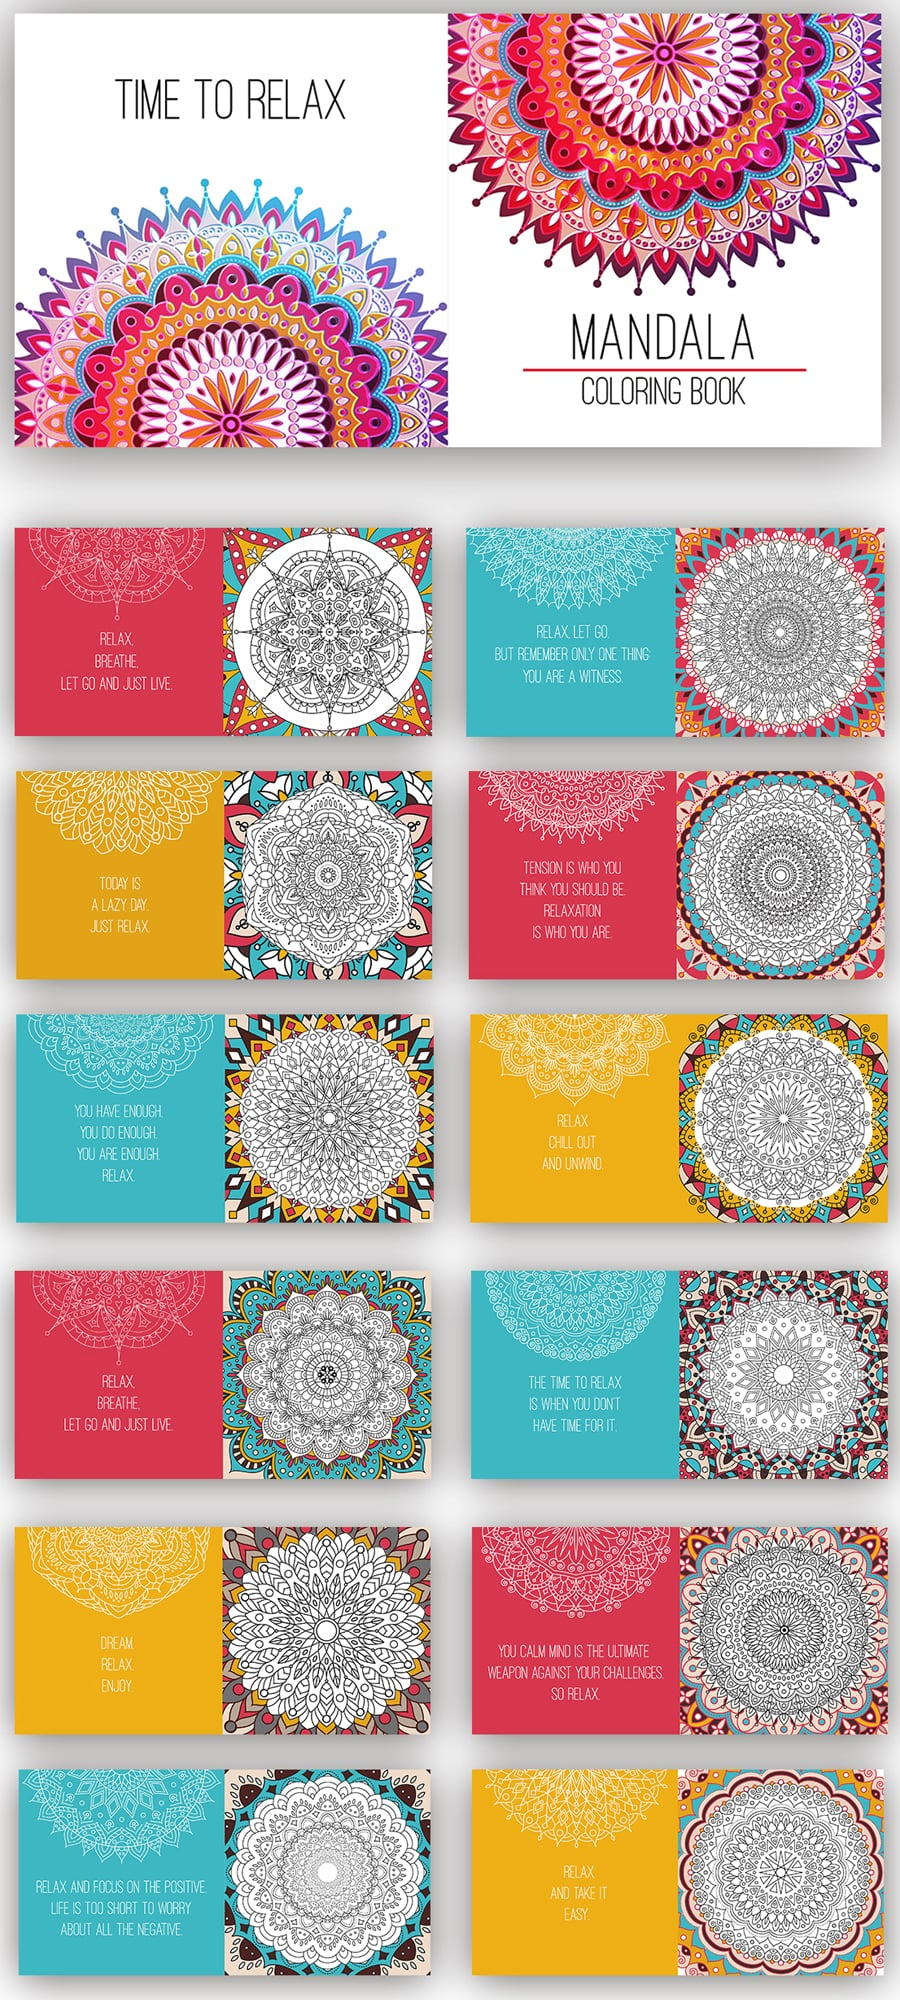 Mandala Coloring Book. Best 24 Coloring Pages in 2020. Only $12!